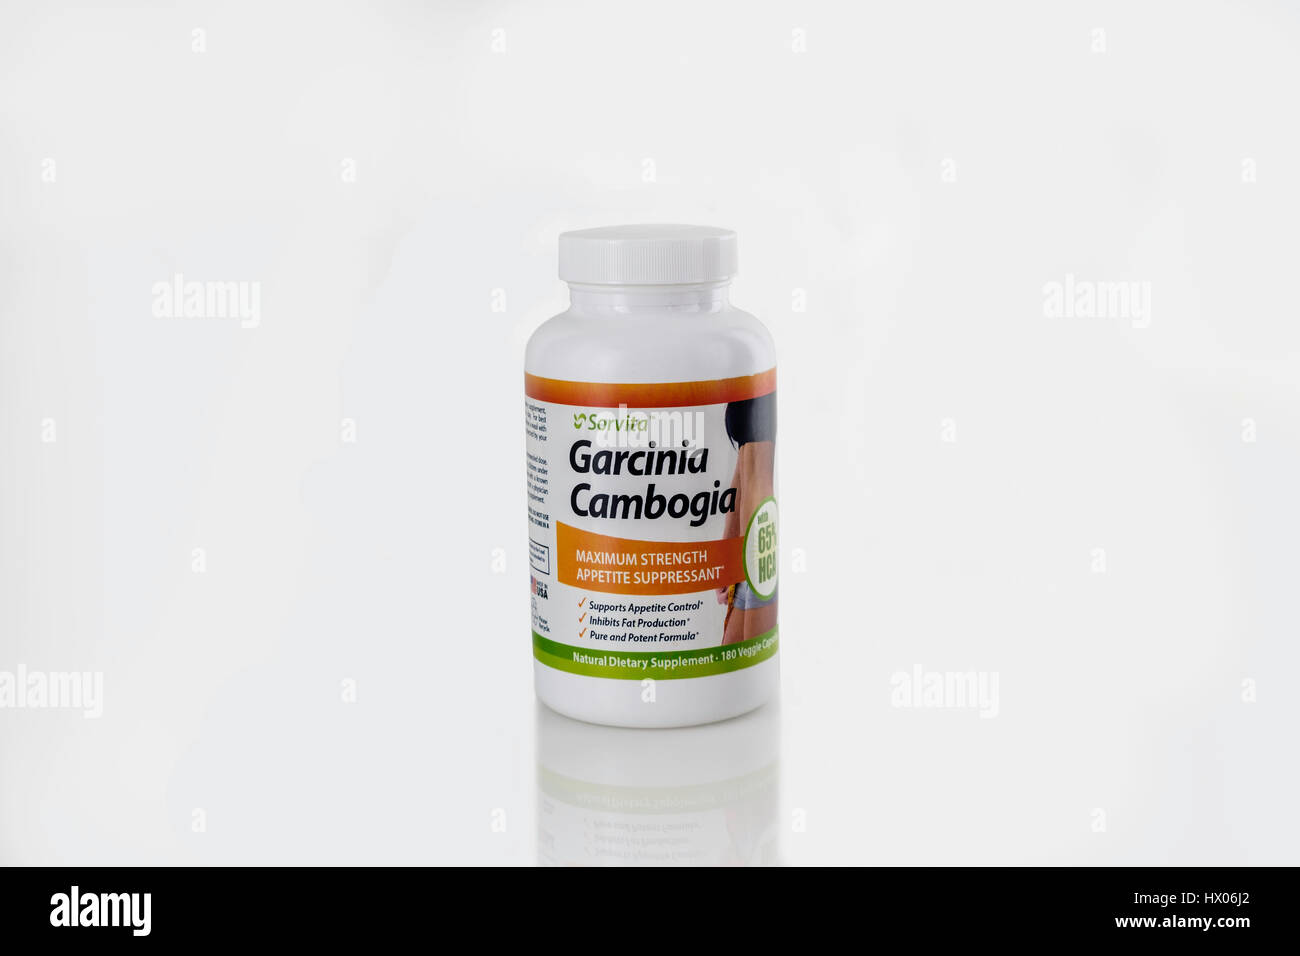 A bottle of Garcinia Cambogia appetite suppressant capsules on a white background. Cutout. USA. - Stock Image